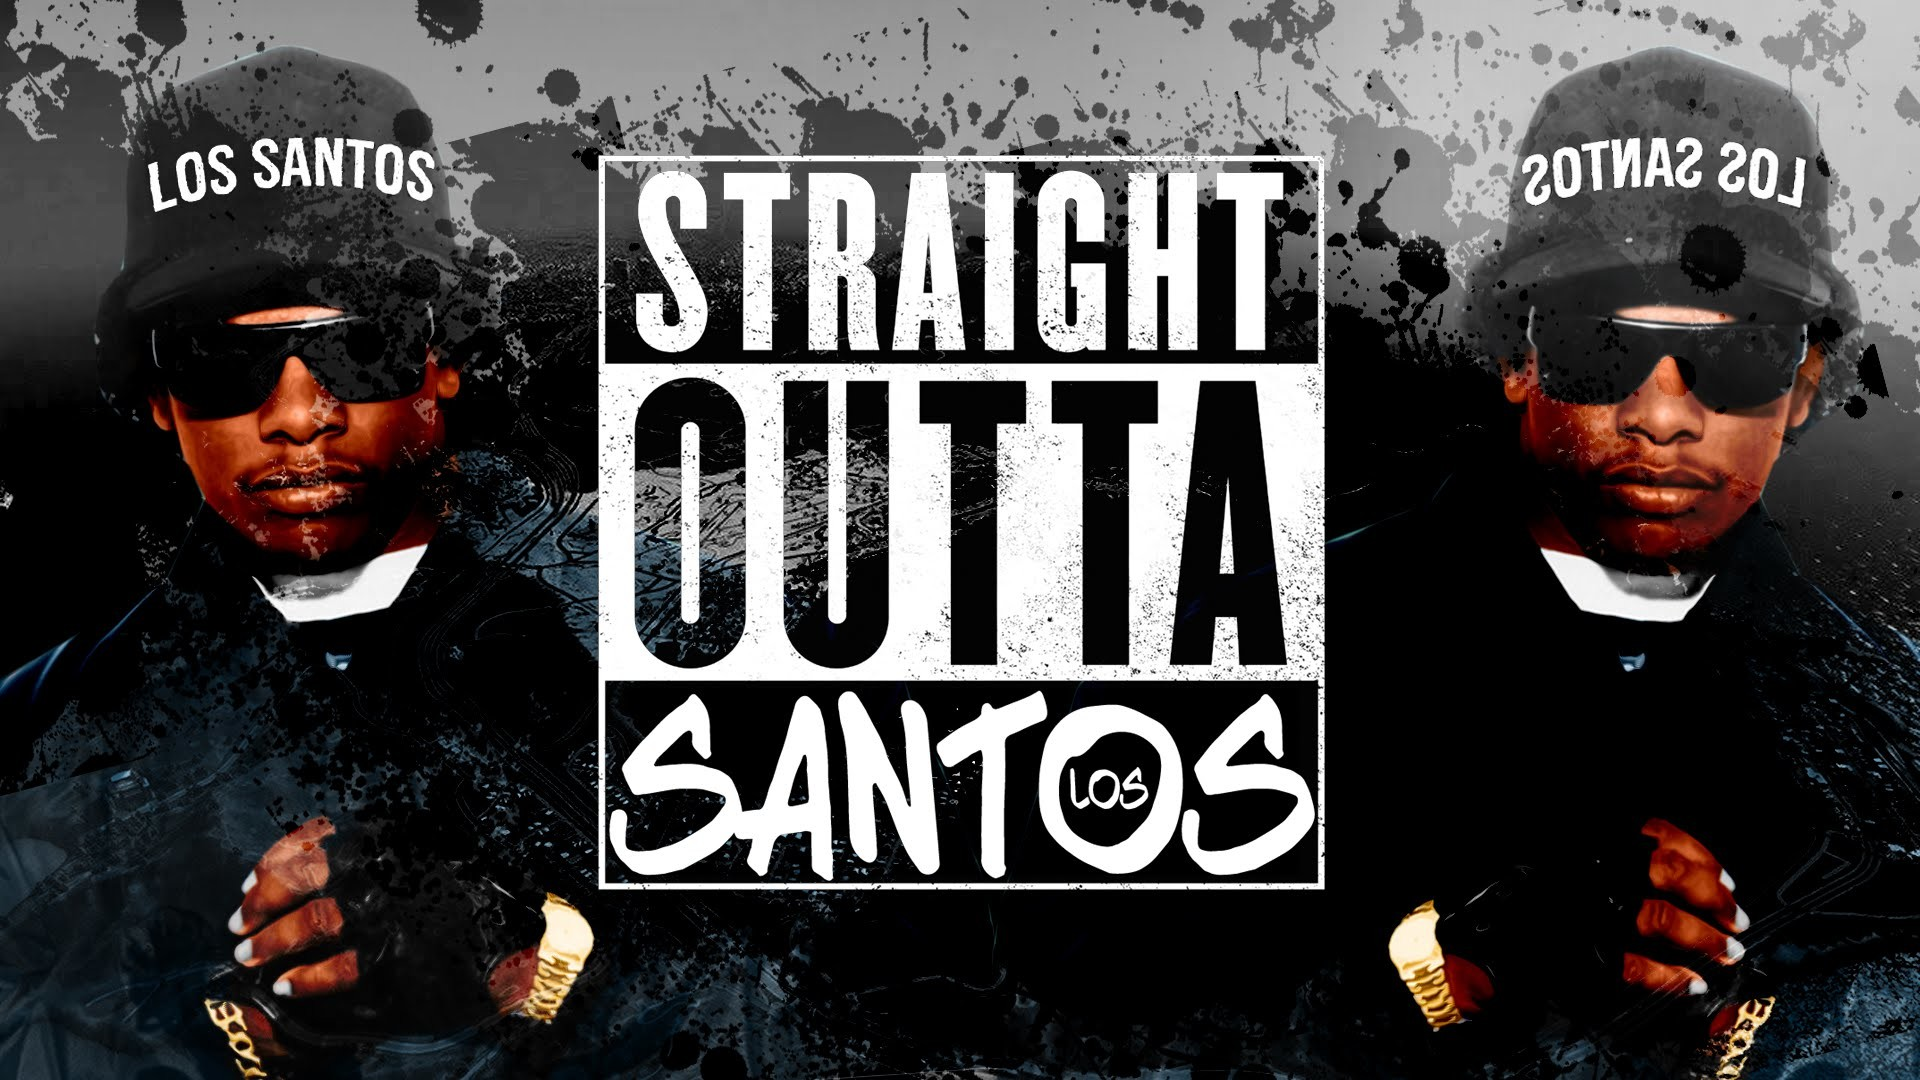 Straight outta Los Santos a GTA Movie Inspired by Straight outta Compton  Full Movie – YouTube